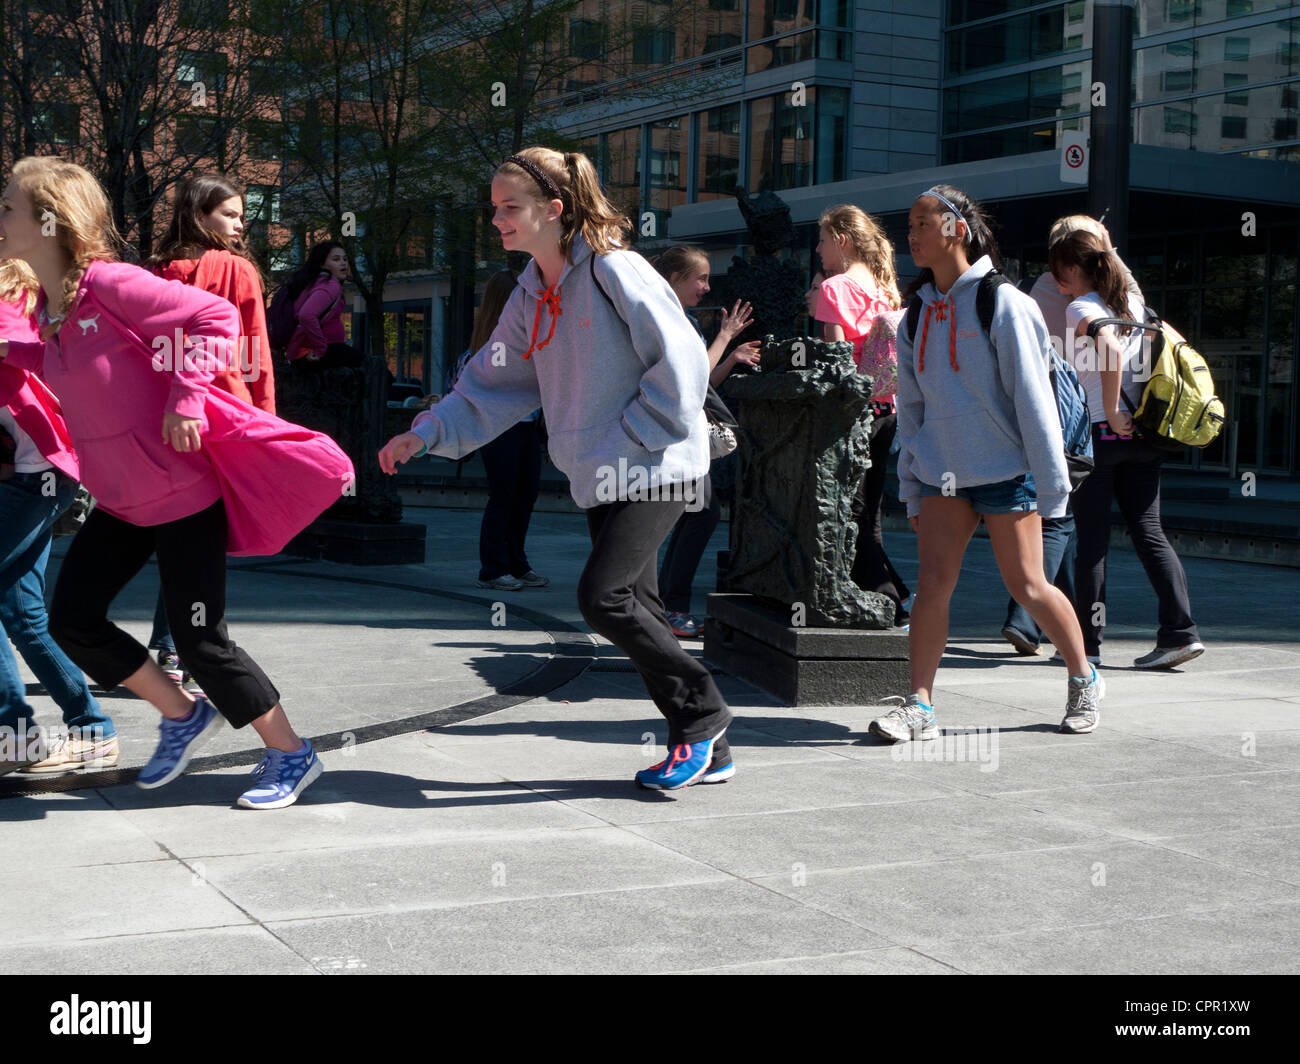 Girls running on school trip outing in Montreal, Quebec, Canada  KATHY DEWITT - Stock Image